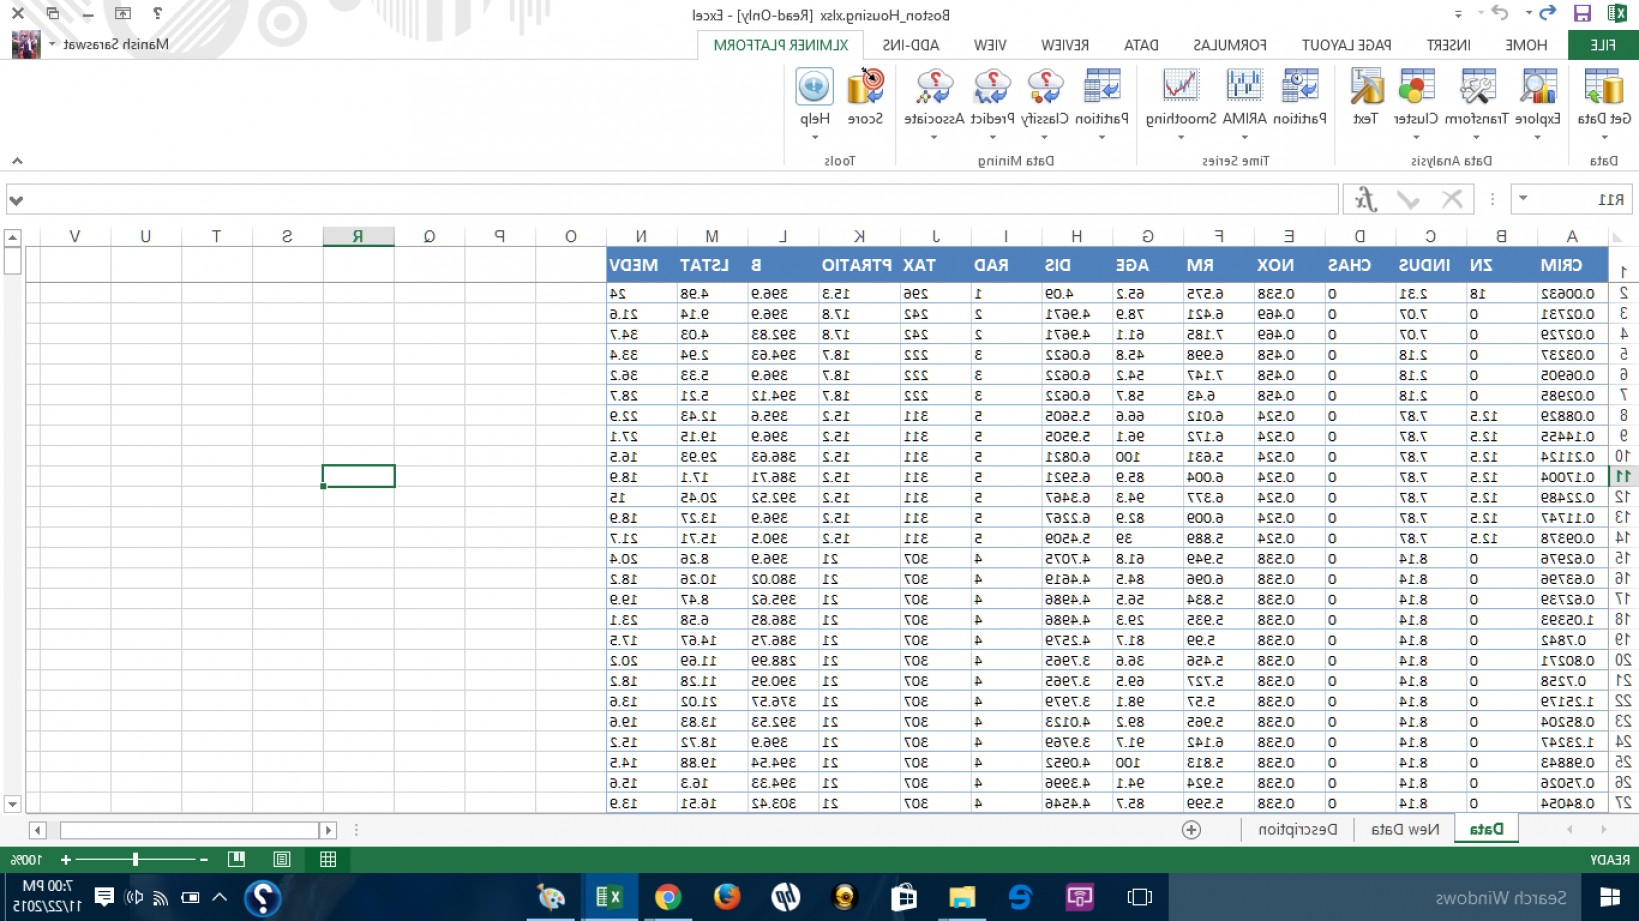 Excel Matrix To Vector: Started Machine Learning Ms Excel Xl Miner